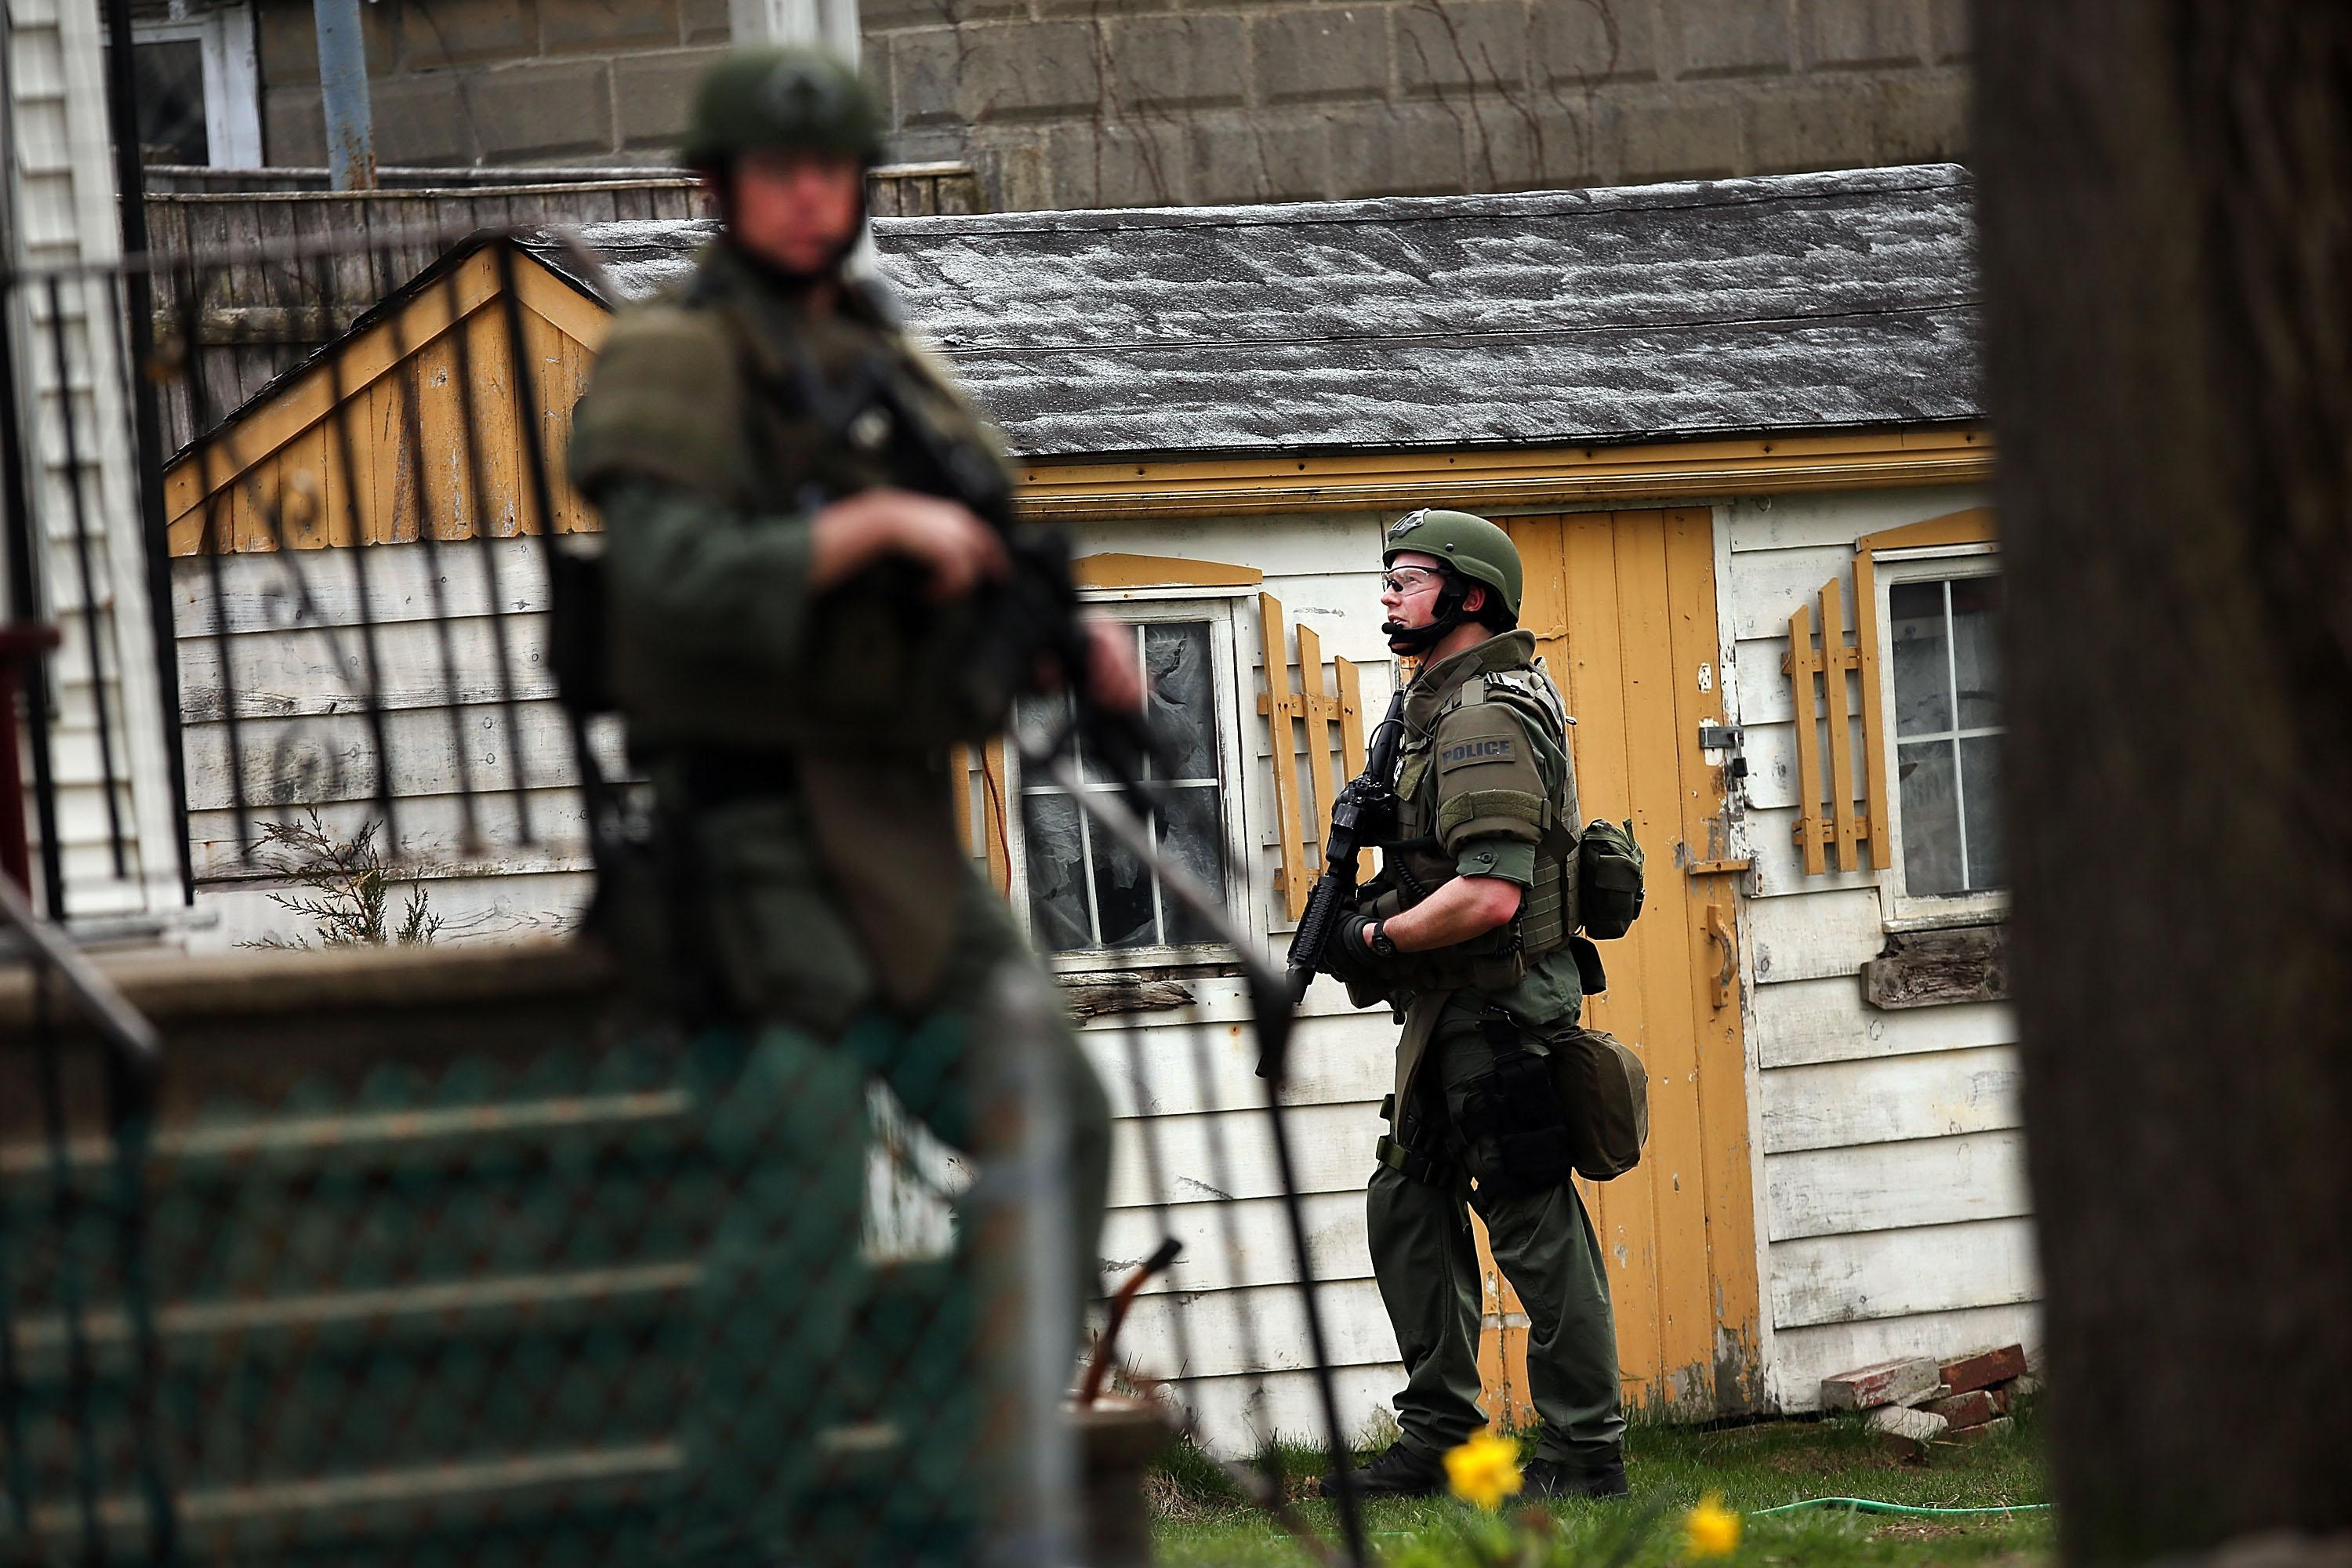 Members of a police S.W.A.T. team search through a neighborhood in Watertown